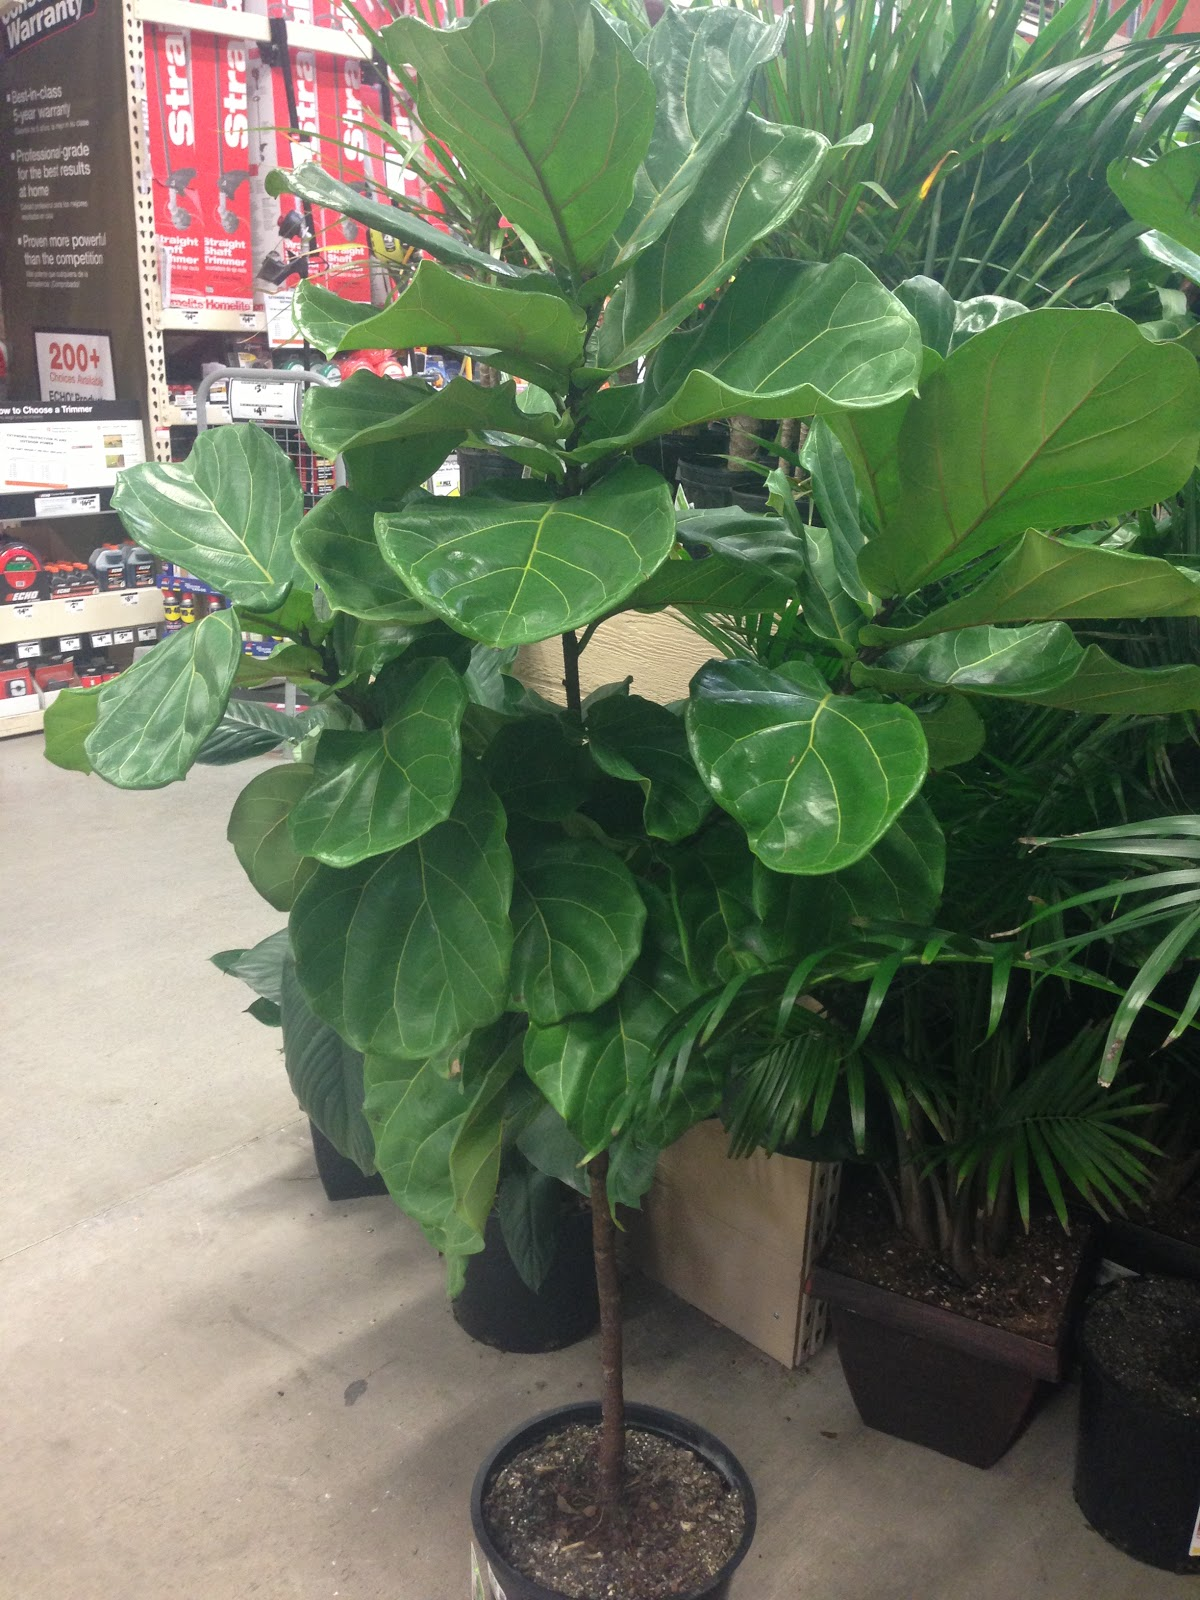 While I Was At Home Depot Picking Up Paint Over The Weekend Spotted A Fiddle Leaf Fig Tree And Sned Pic Sent It To Chris For Roval